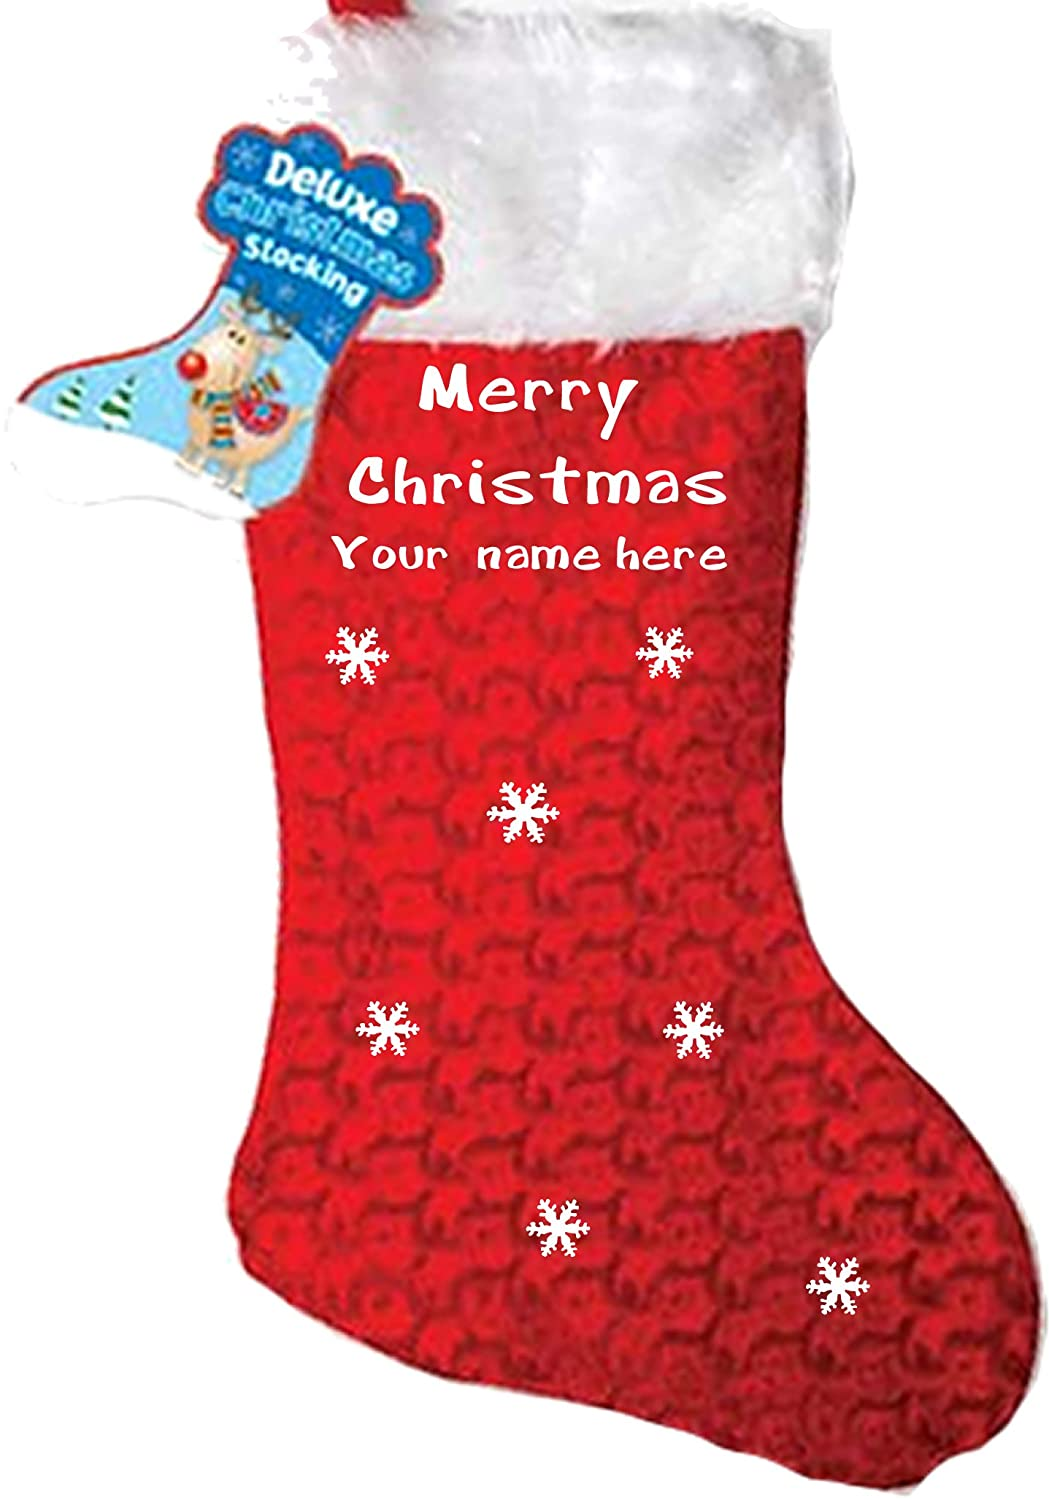 Personalised Stocking, Xmas........Merry Christmas * Your Name Here* Printed Personalized Stocking (Red)